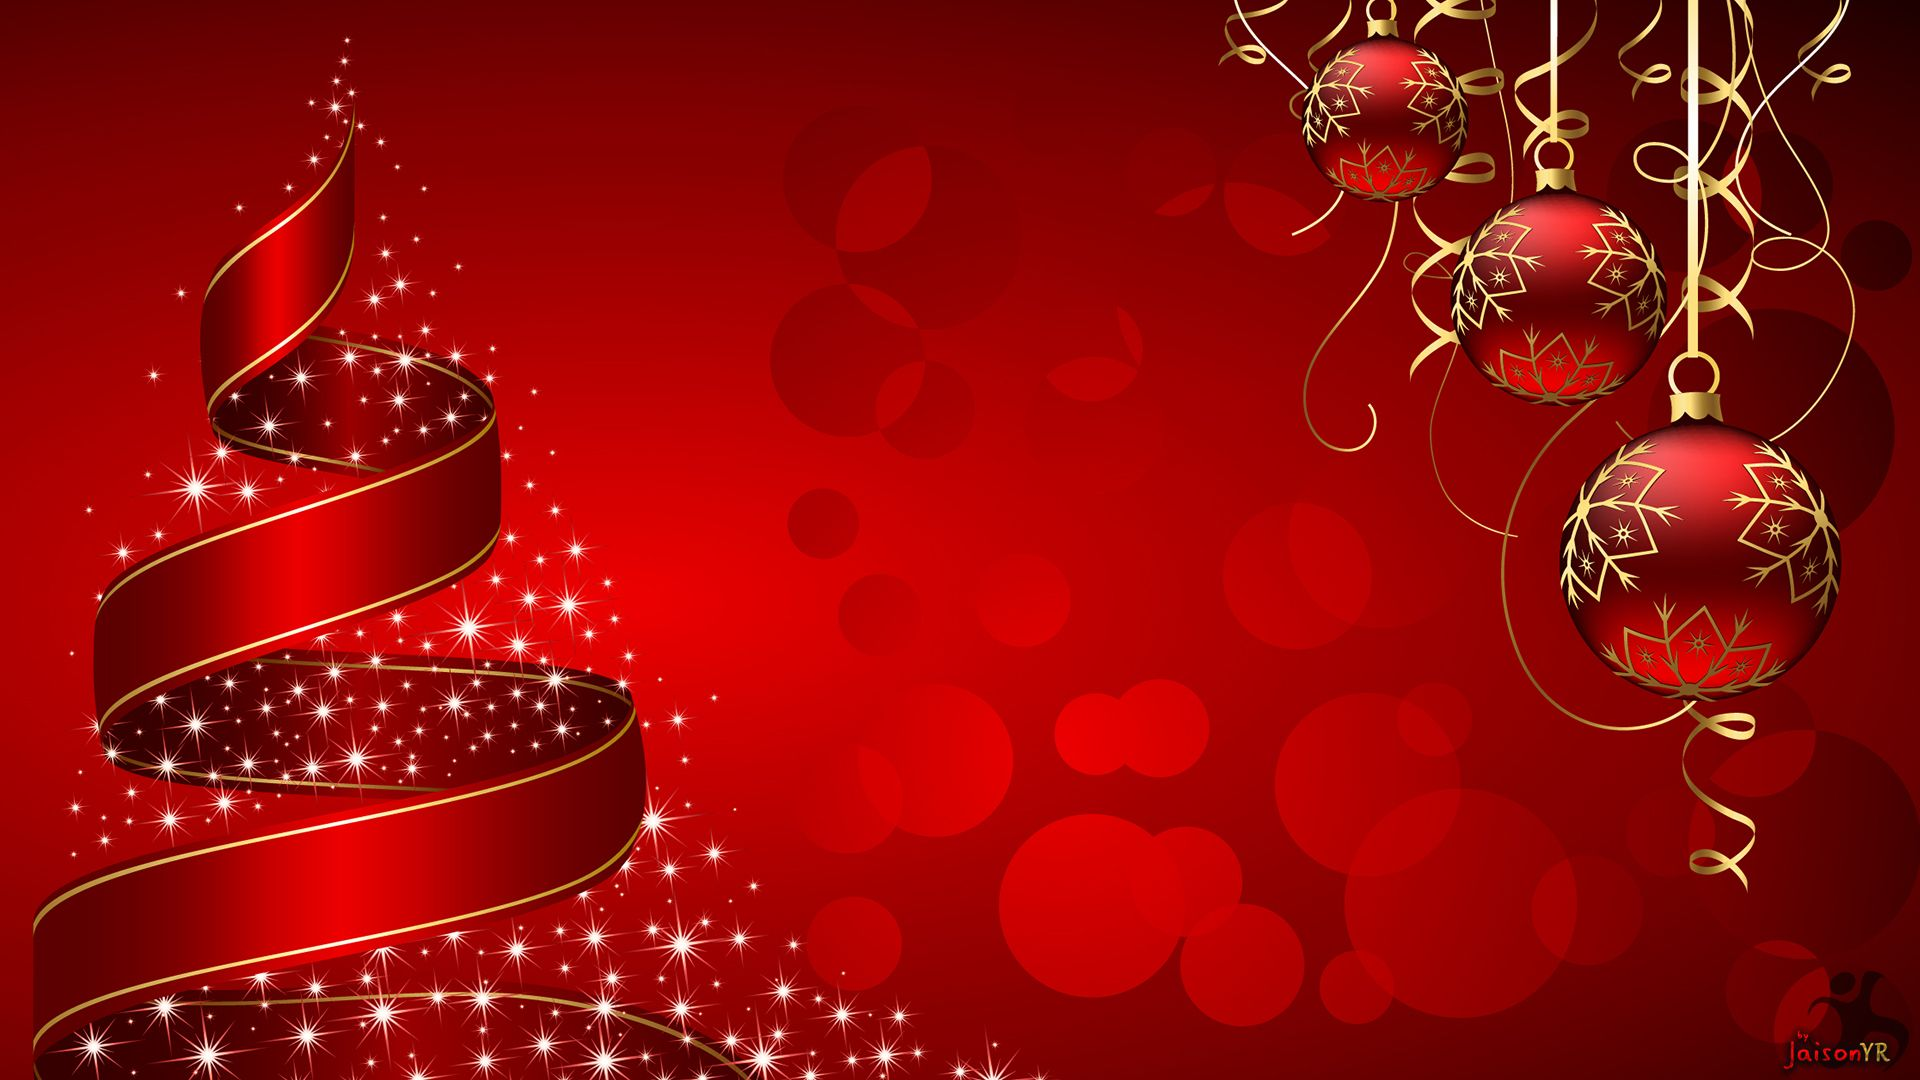 Pin on christmas backgrounds 1920x1080